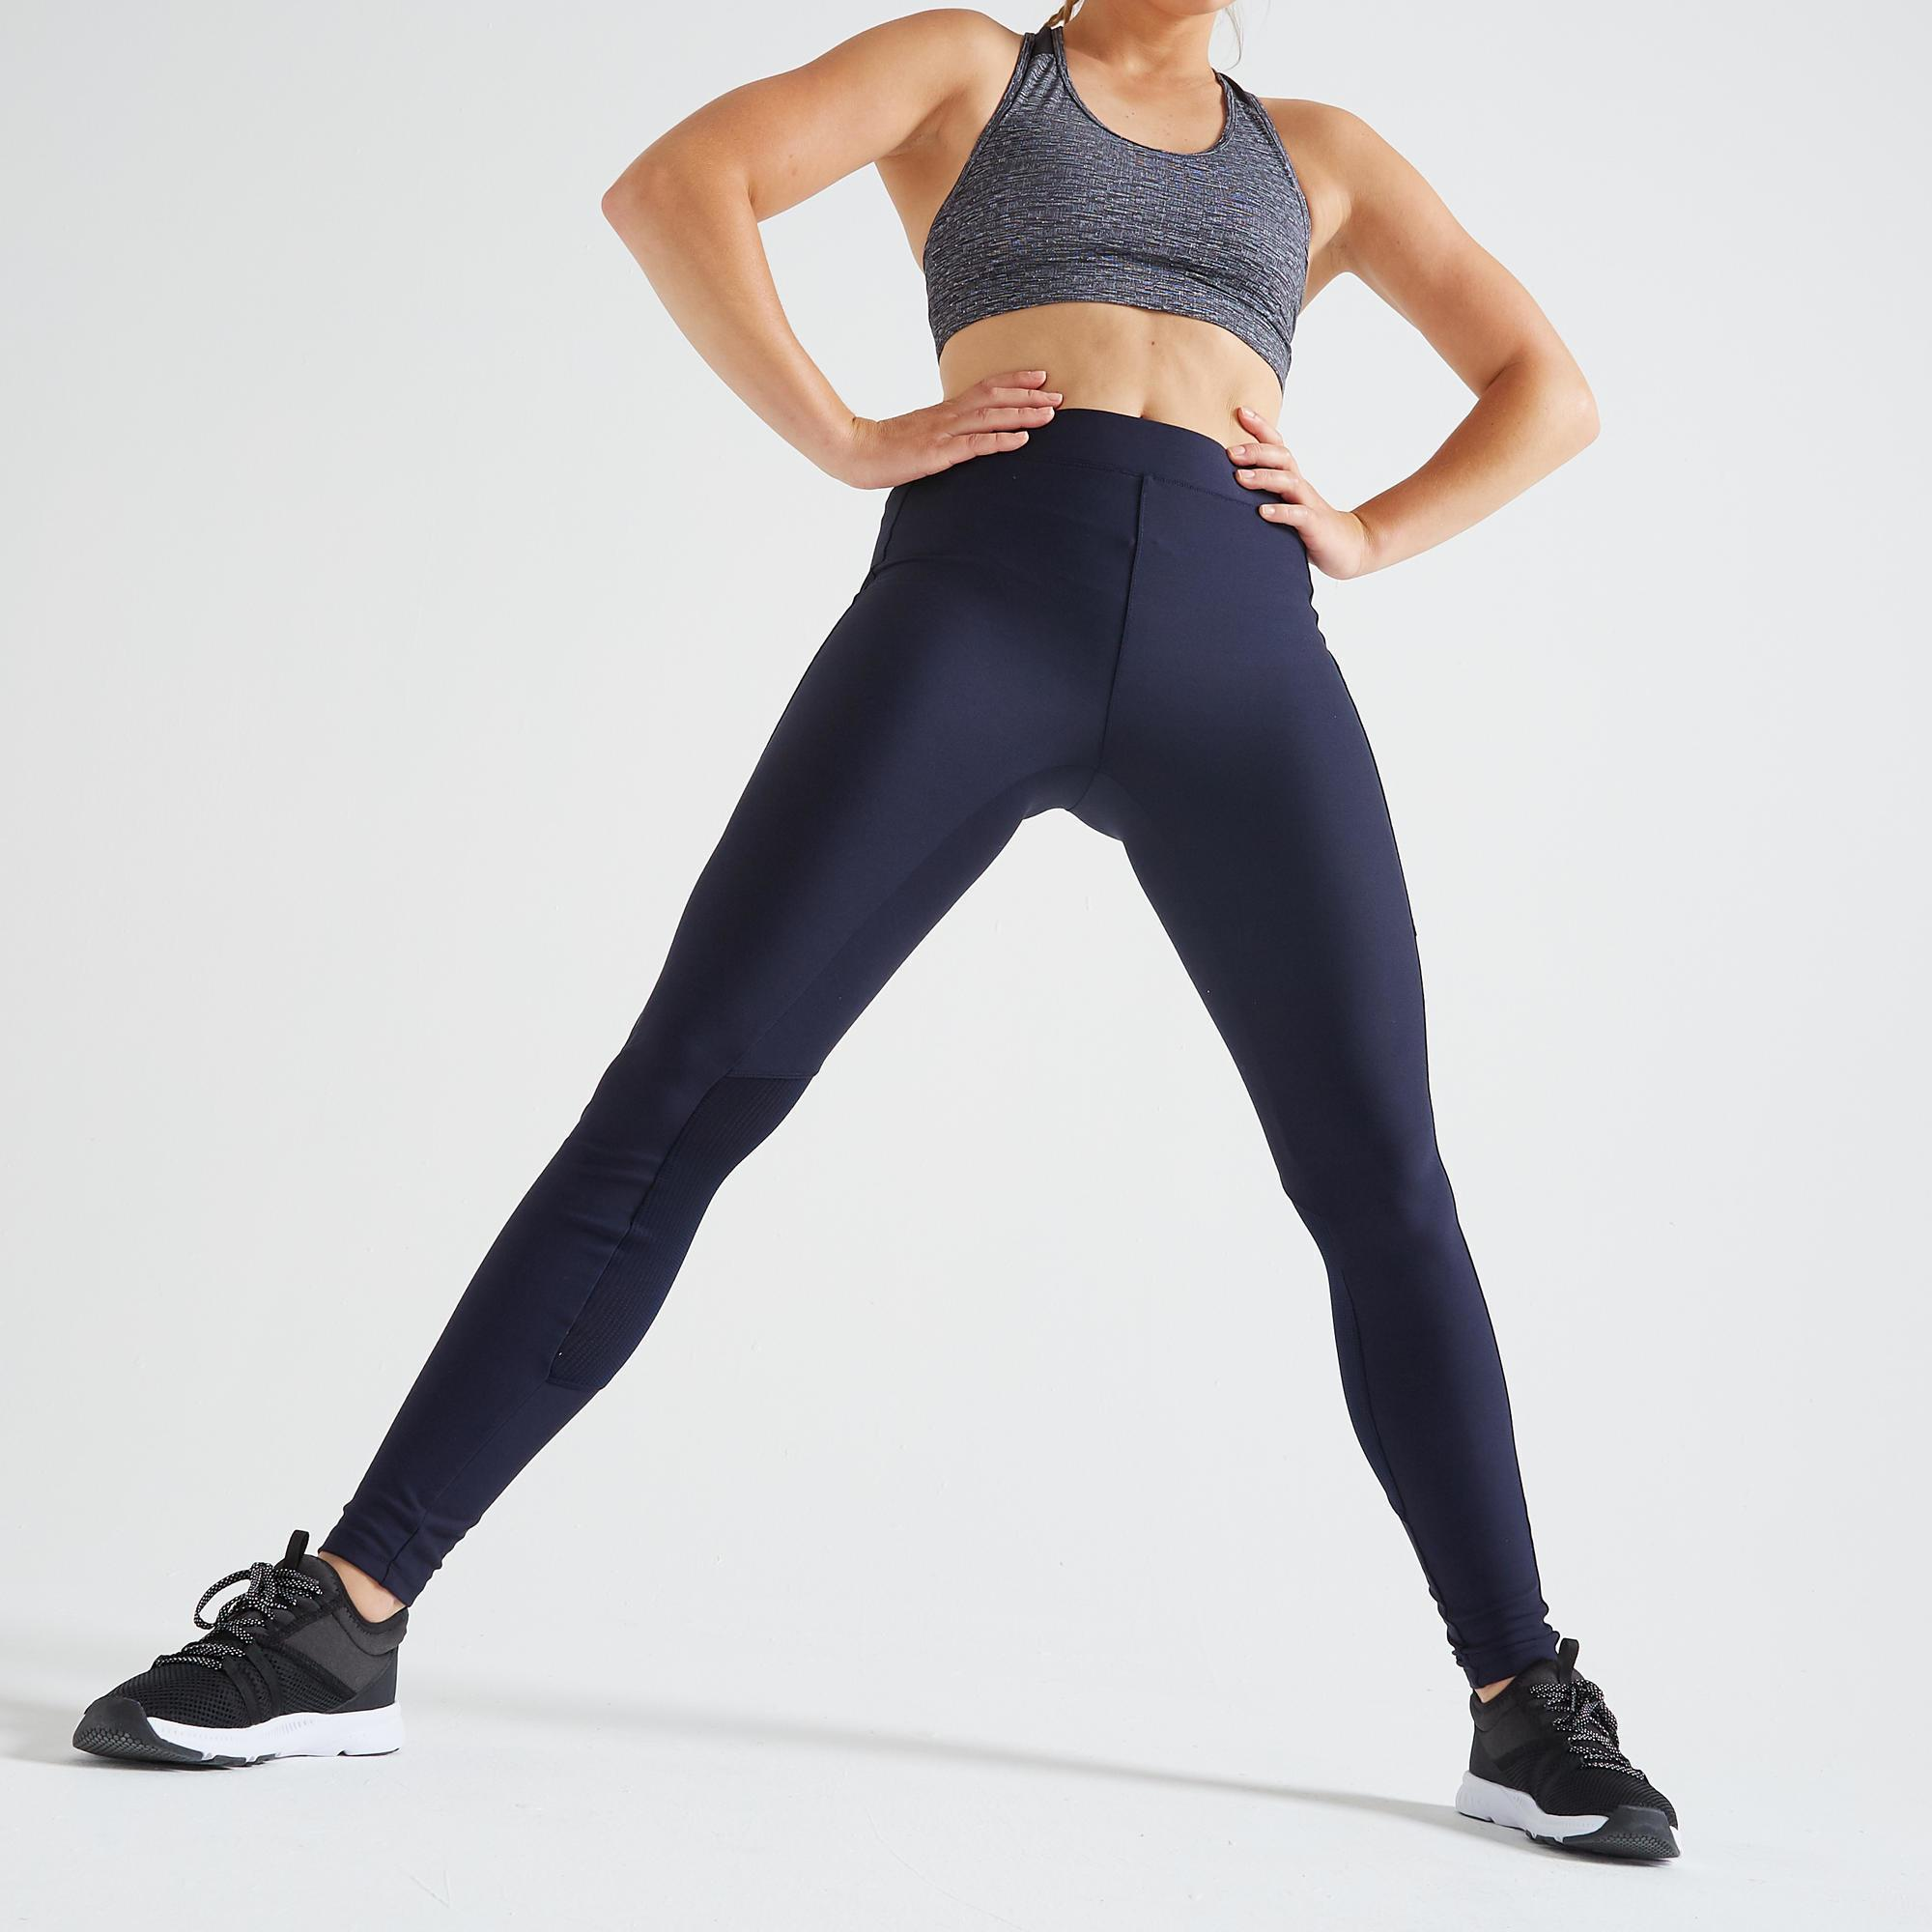 Legging Fitness Cardio Training Femme Bleu Marine 120 Domyos By Decathlon